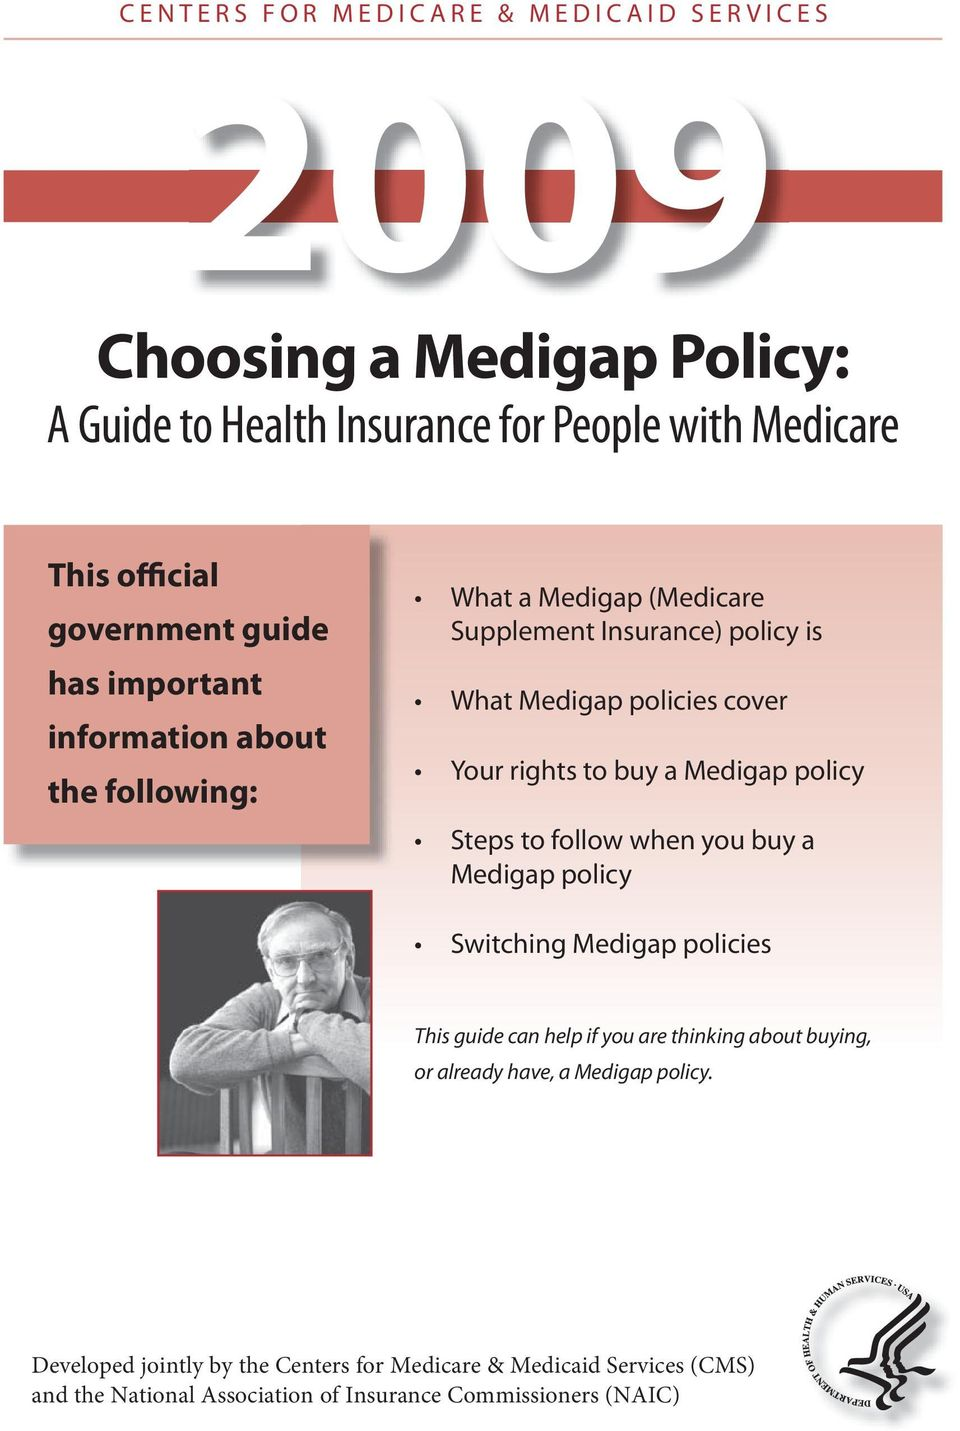 buy a Medigap policy Steps to follow when you buy a Medigap policy Switching Medigap policies This guide can help if you are thinking about buying, or